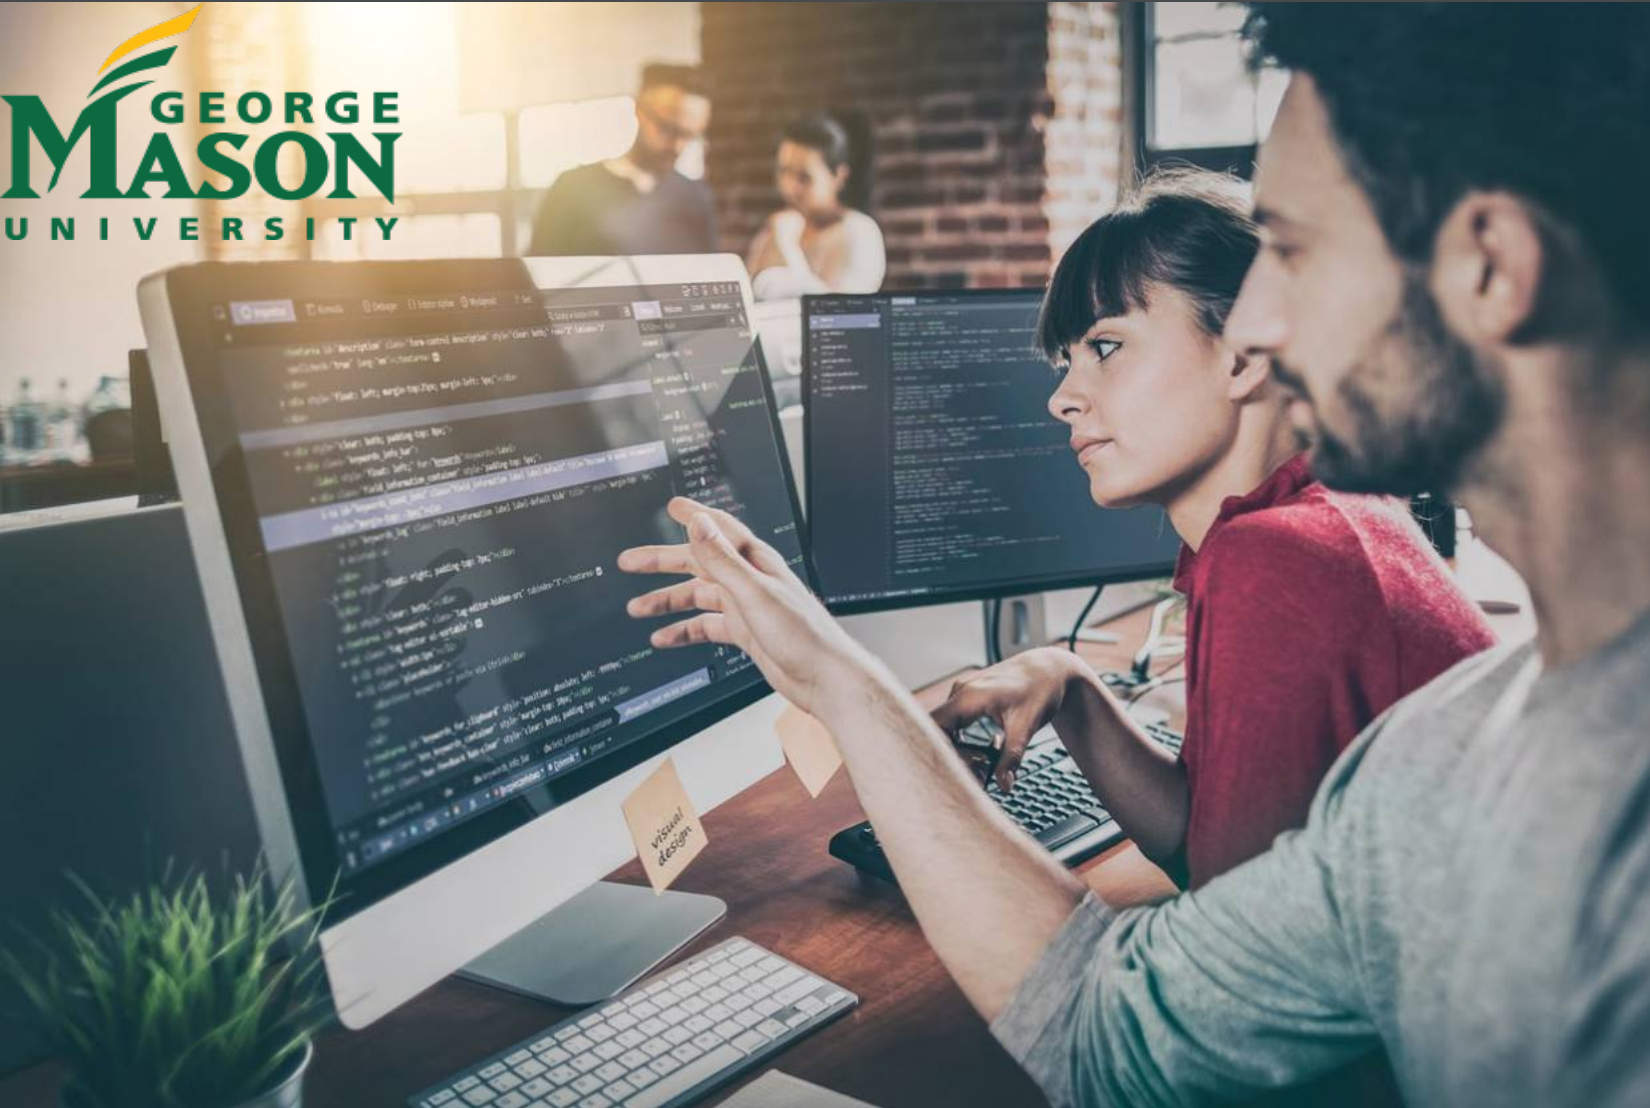 Study Cyber Security And Become A Digital Warrior At George Mason University Students Who Earn Their Degree Fro Web Development Web Design Company Development